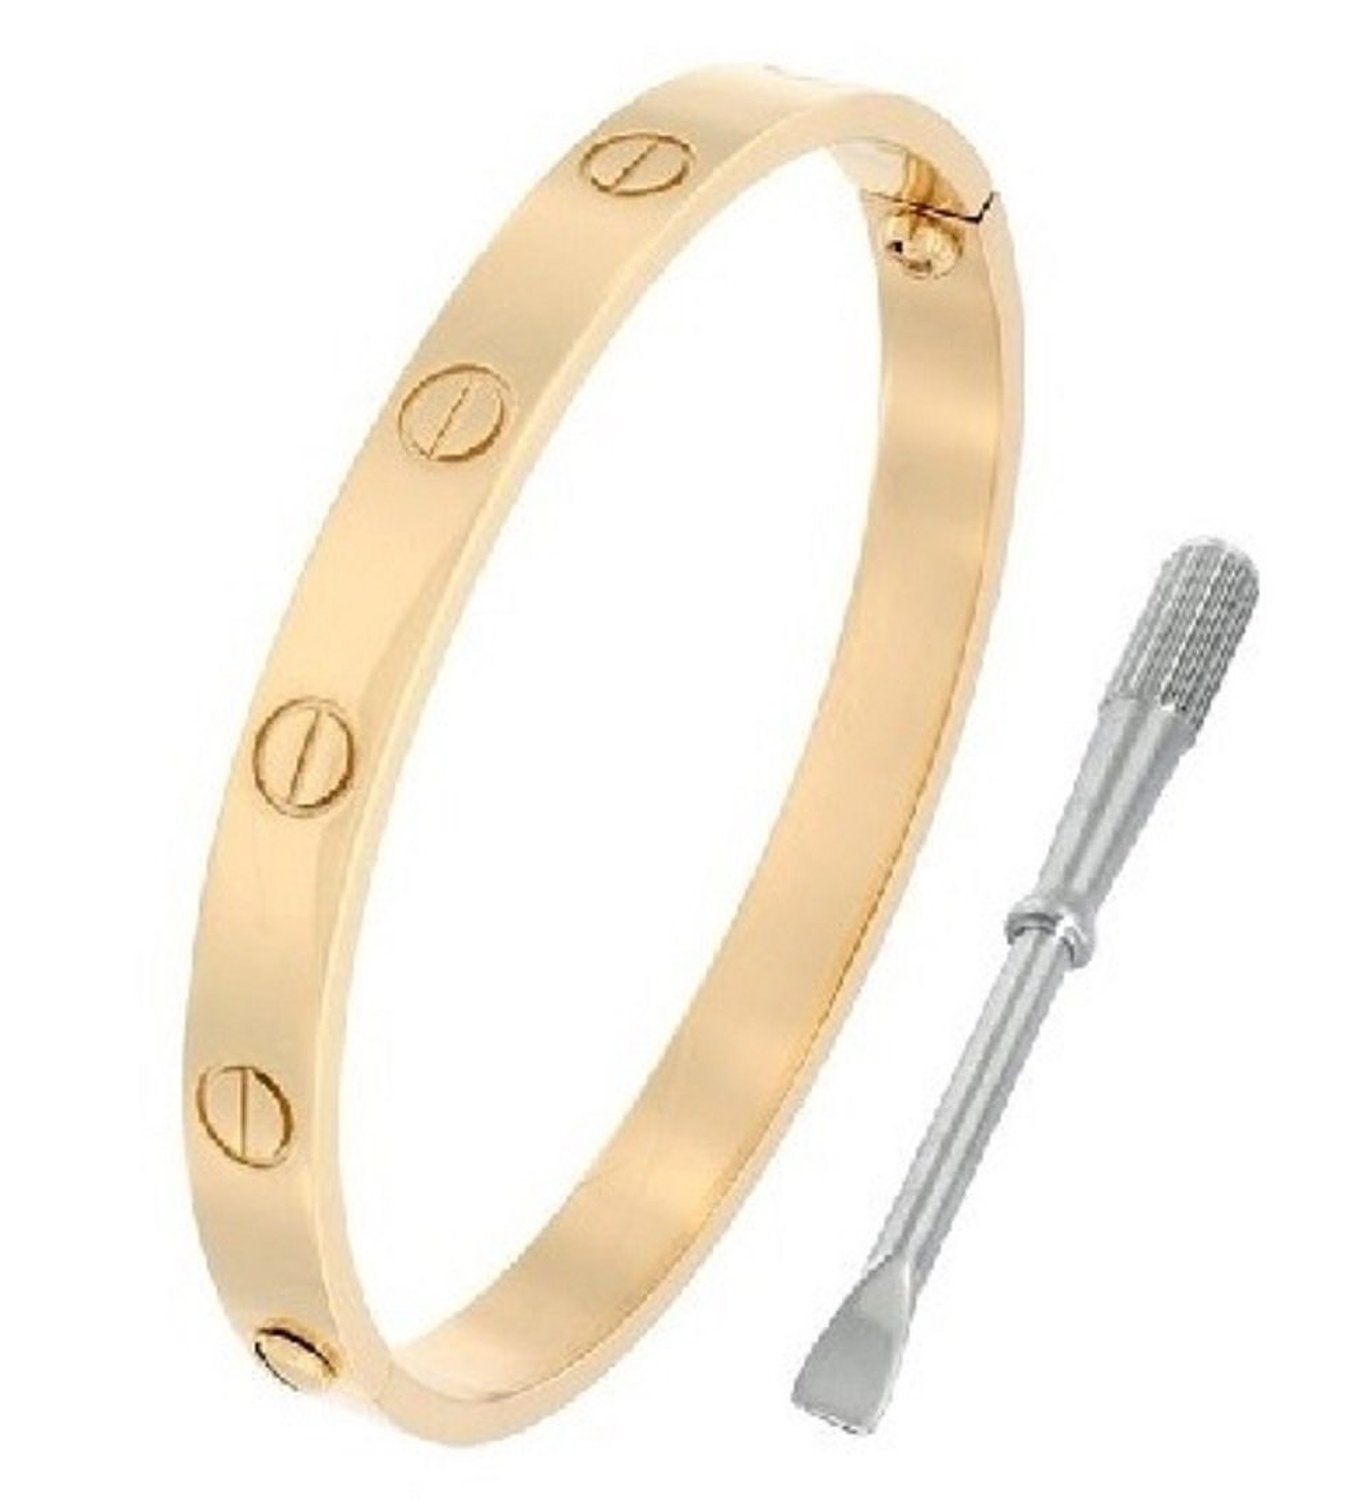 steel oval designer screw head bracelet size crystalline stainless bangle full or from things p bangles inspired